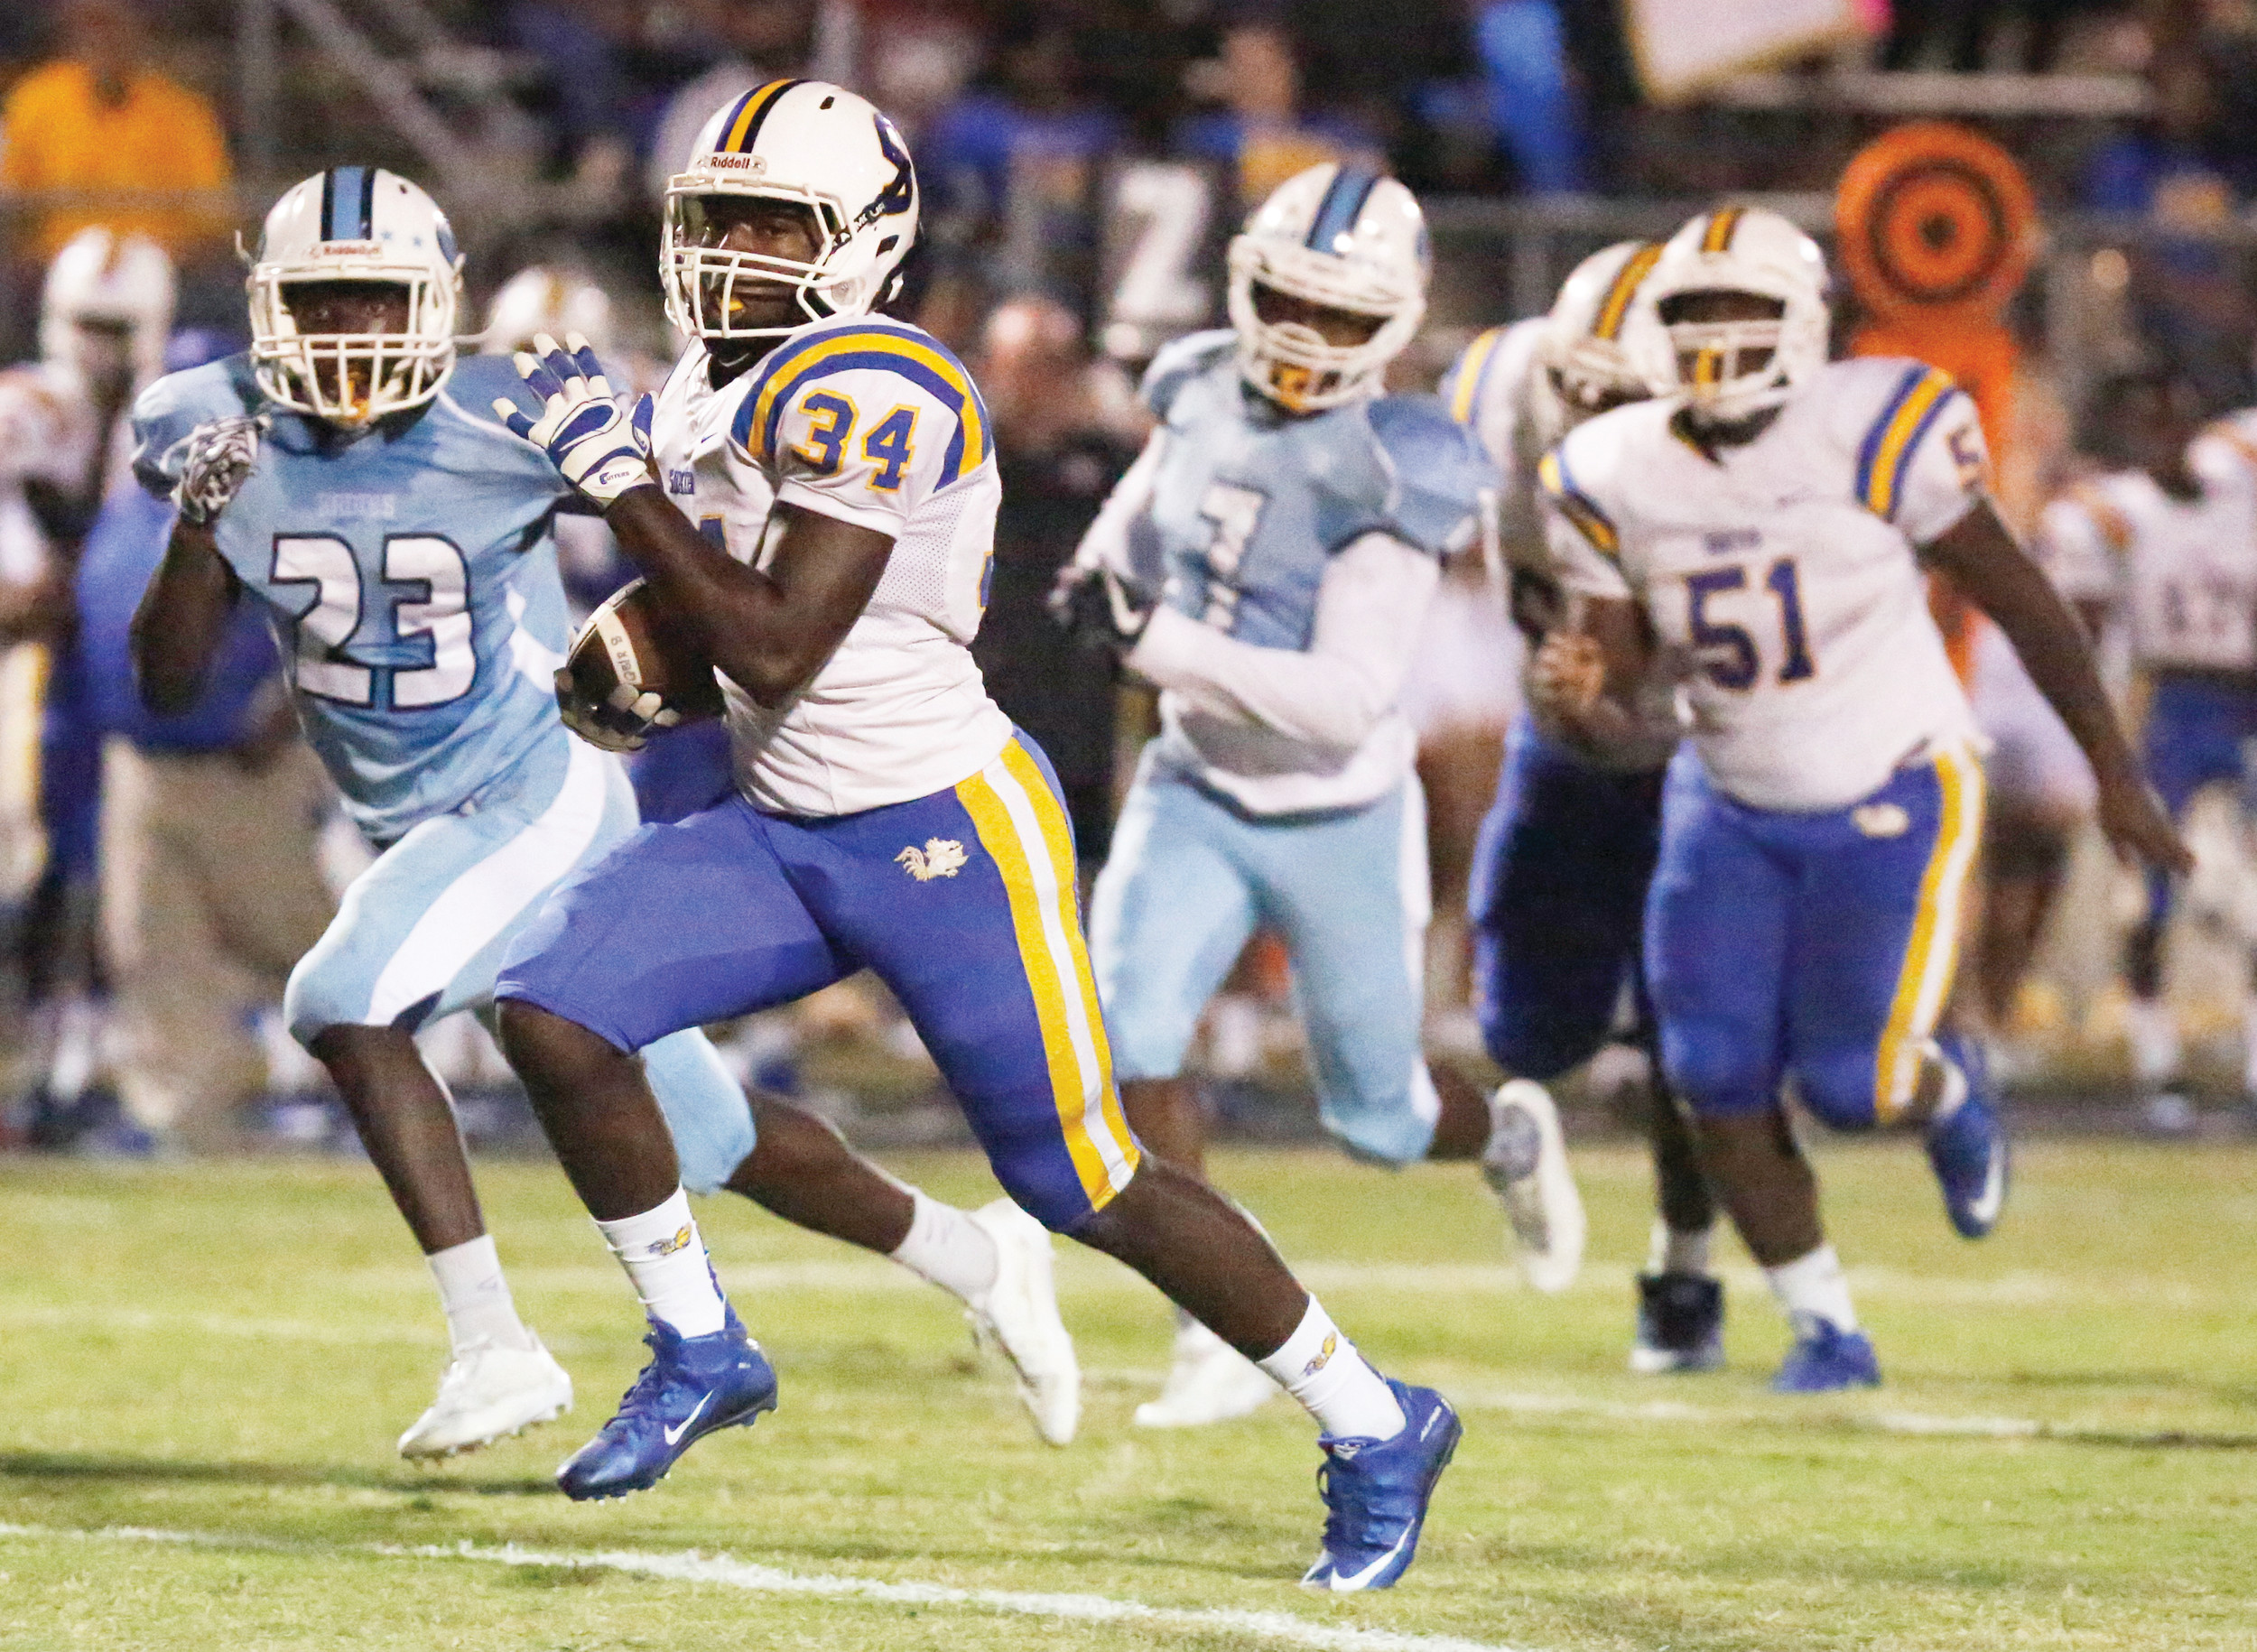 Sumter's Da'Jon Butts (34) and the Gamecocks return to Florence Memorial Stadium tonight when they take on West Florence at 7:30 p.m.